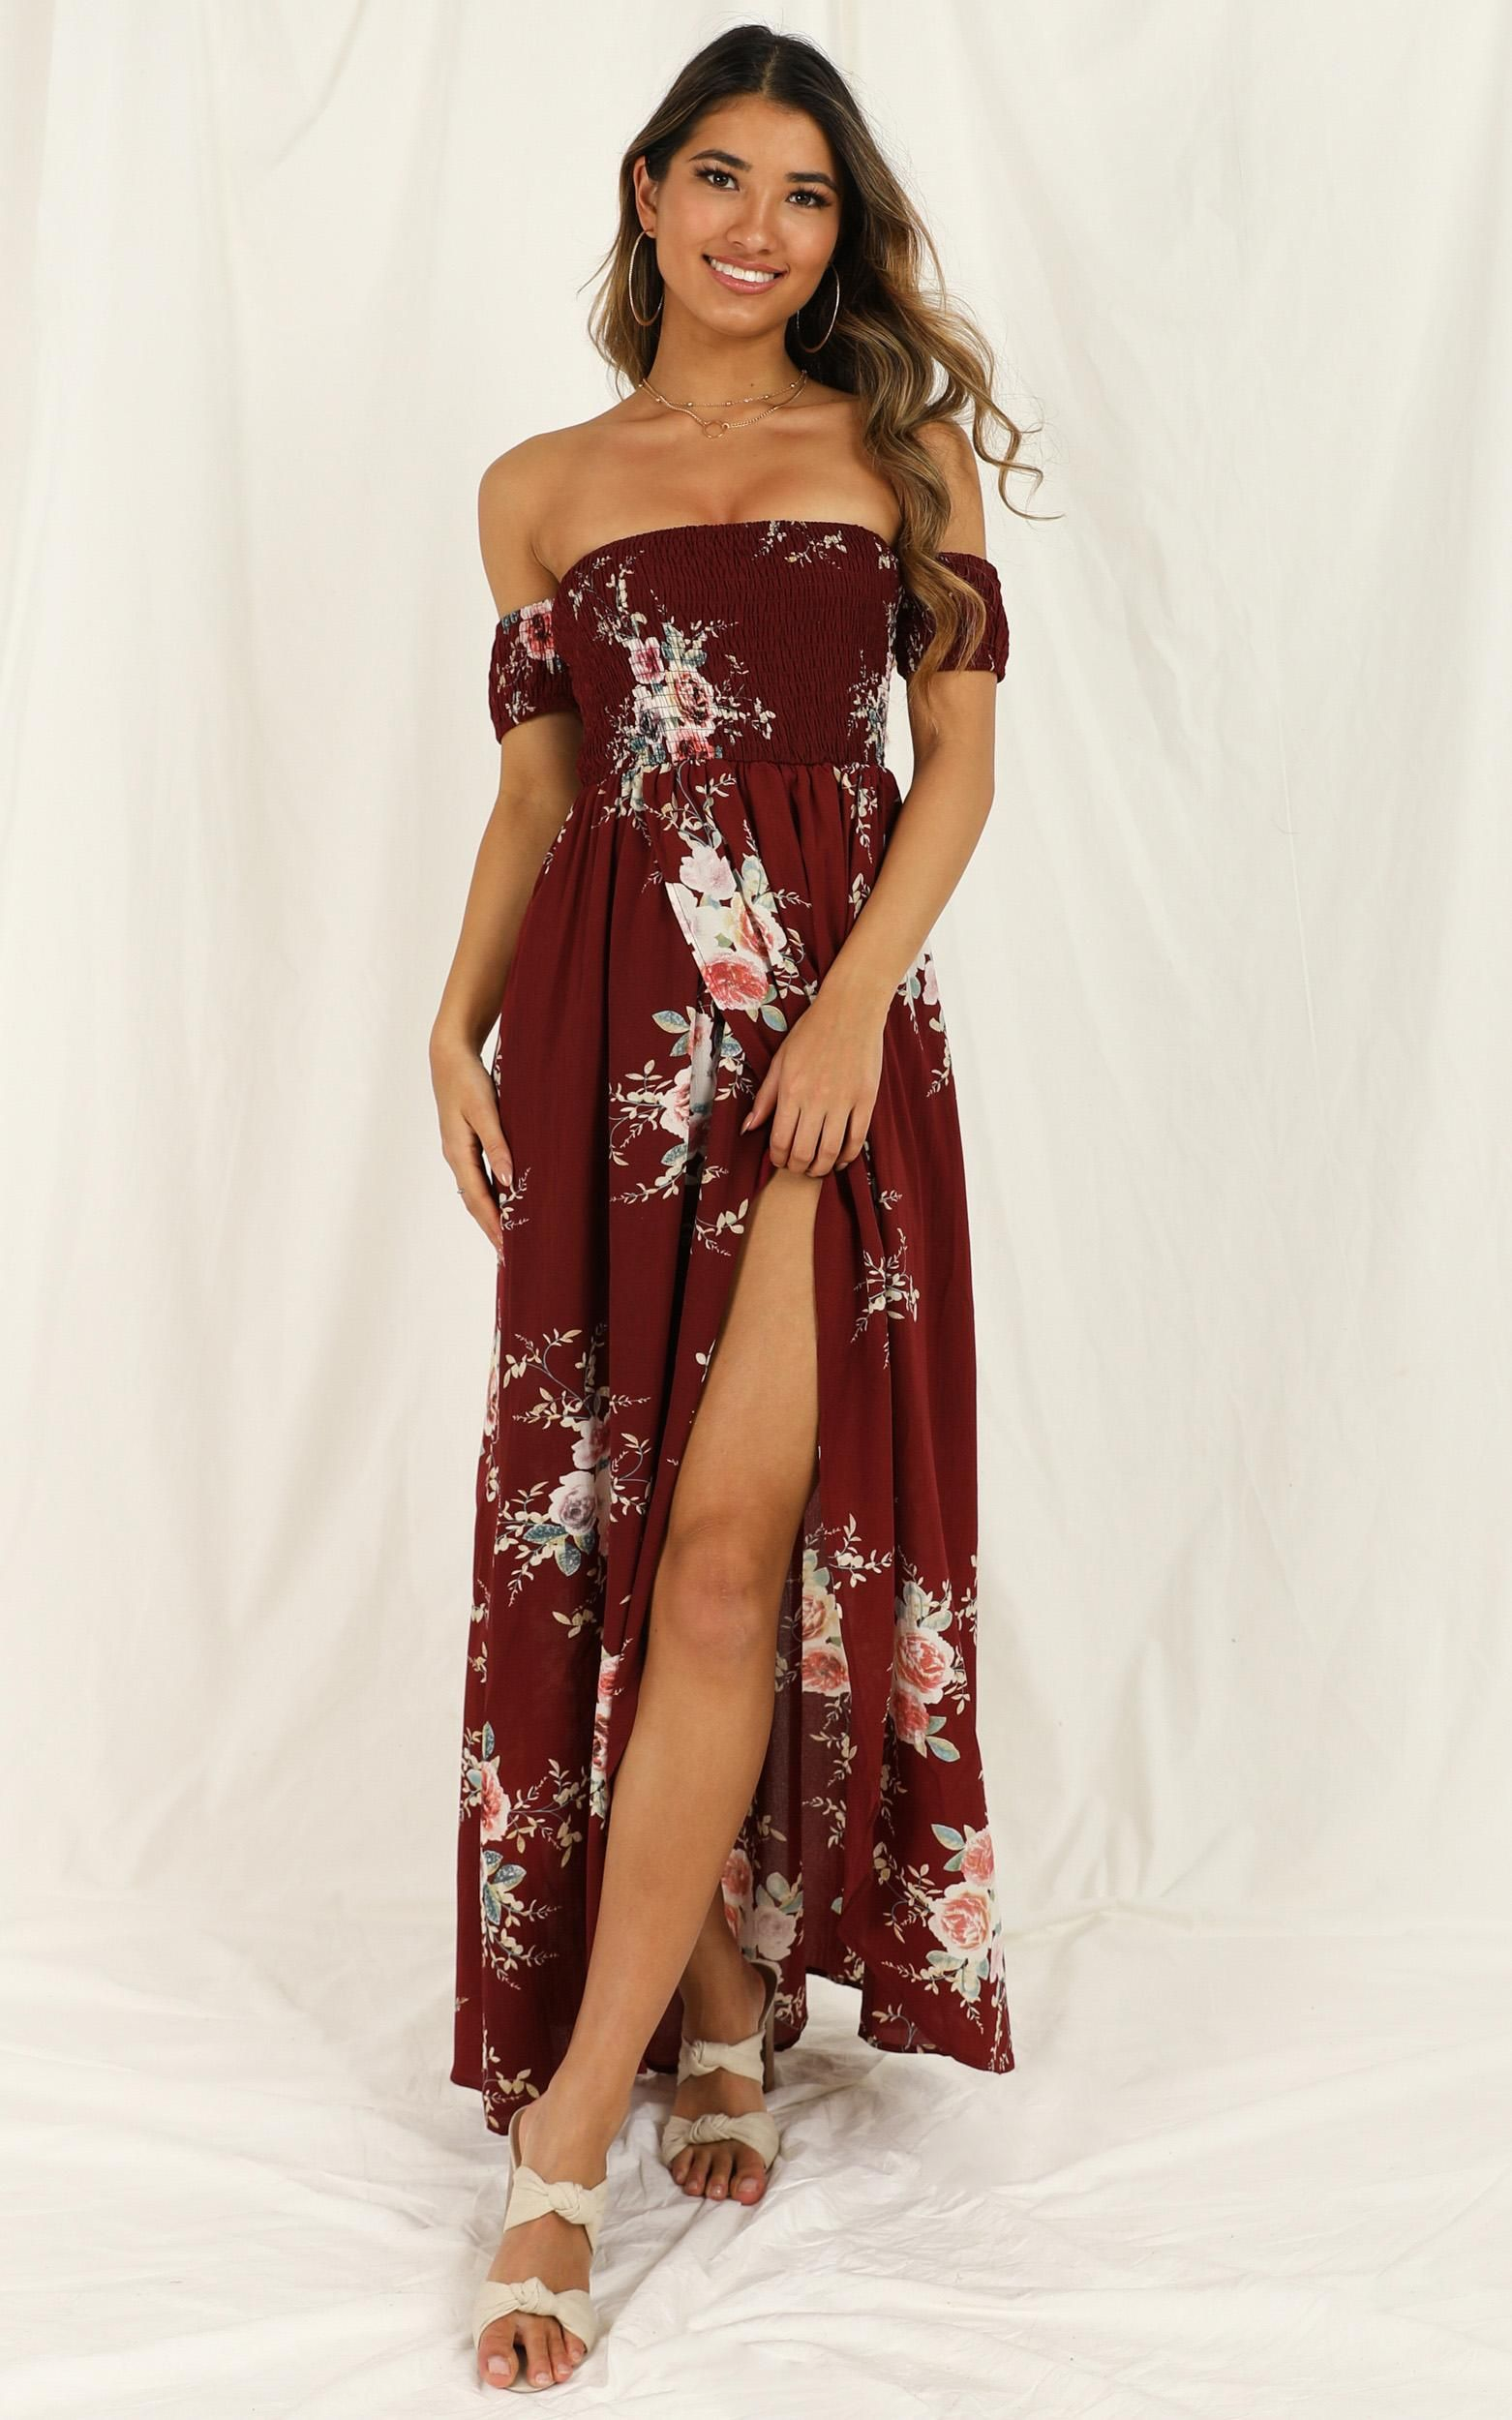 Lovestruck Maxi Dress In Wine Floral Showpo in 2020